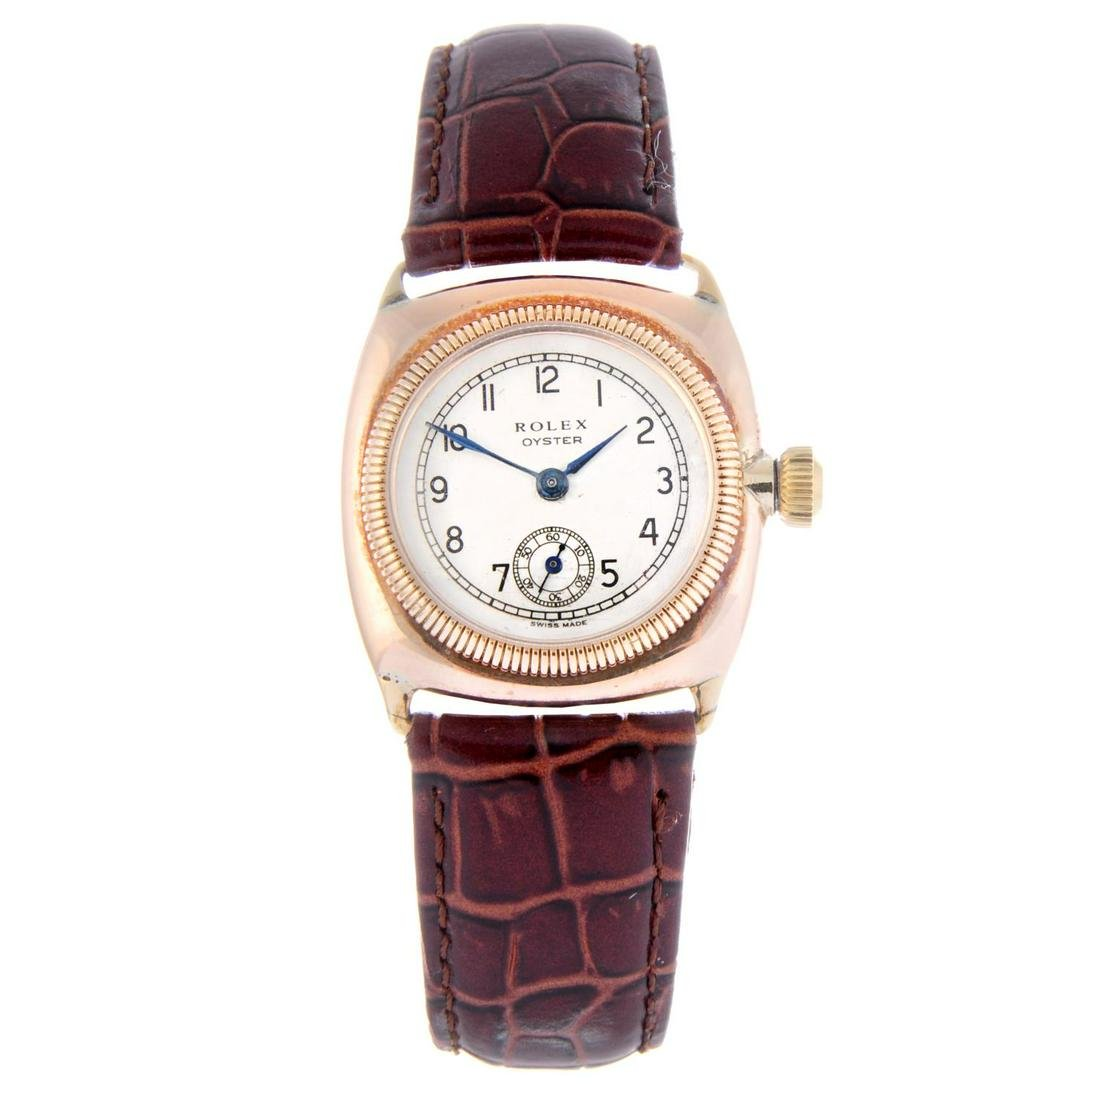 ROLEX - a gentleman's Oyster wrist watch. 9ct rose gold